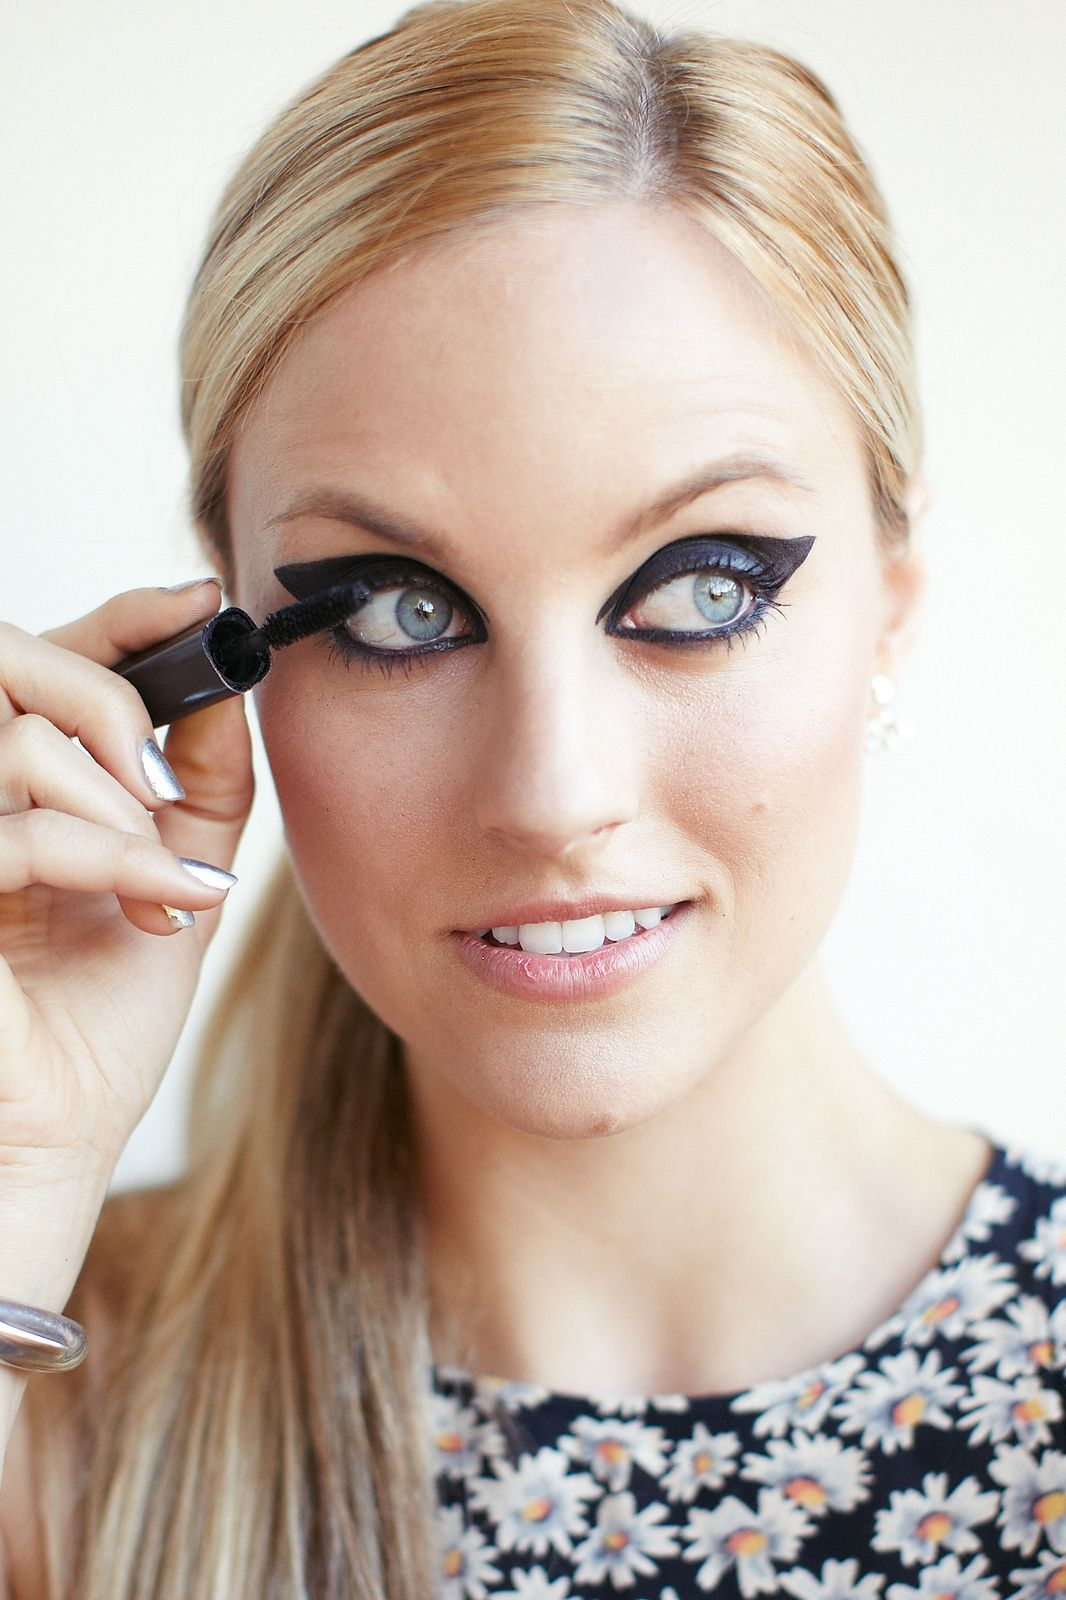 Eyeliner Tutorial How To Apply, Tips And Tricks